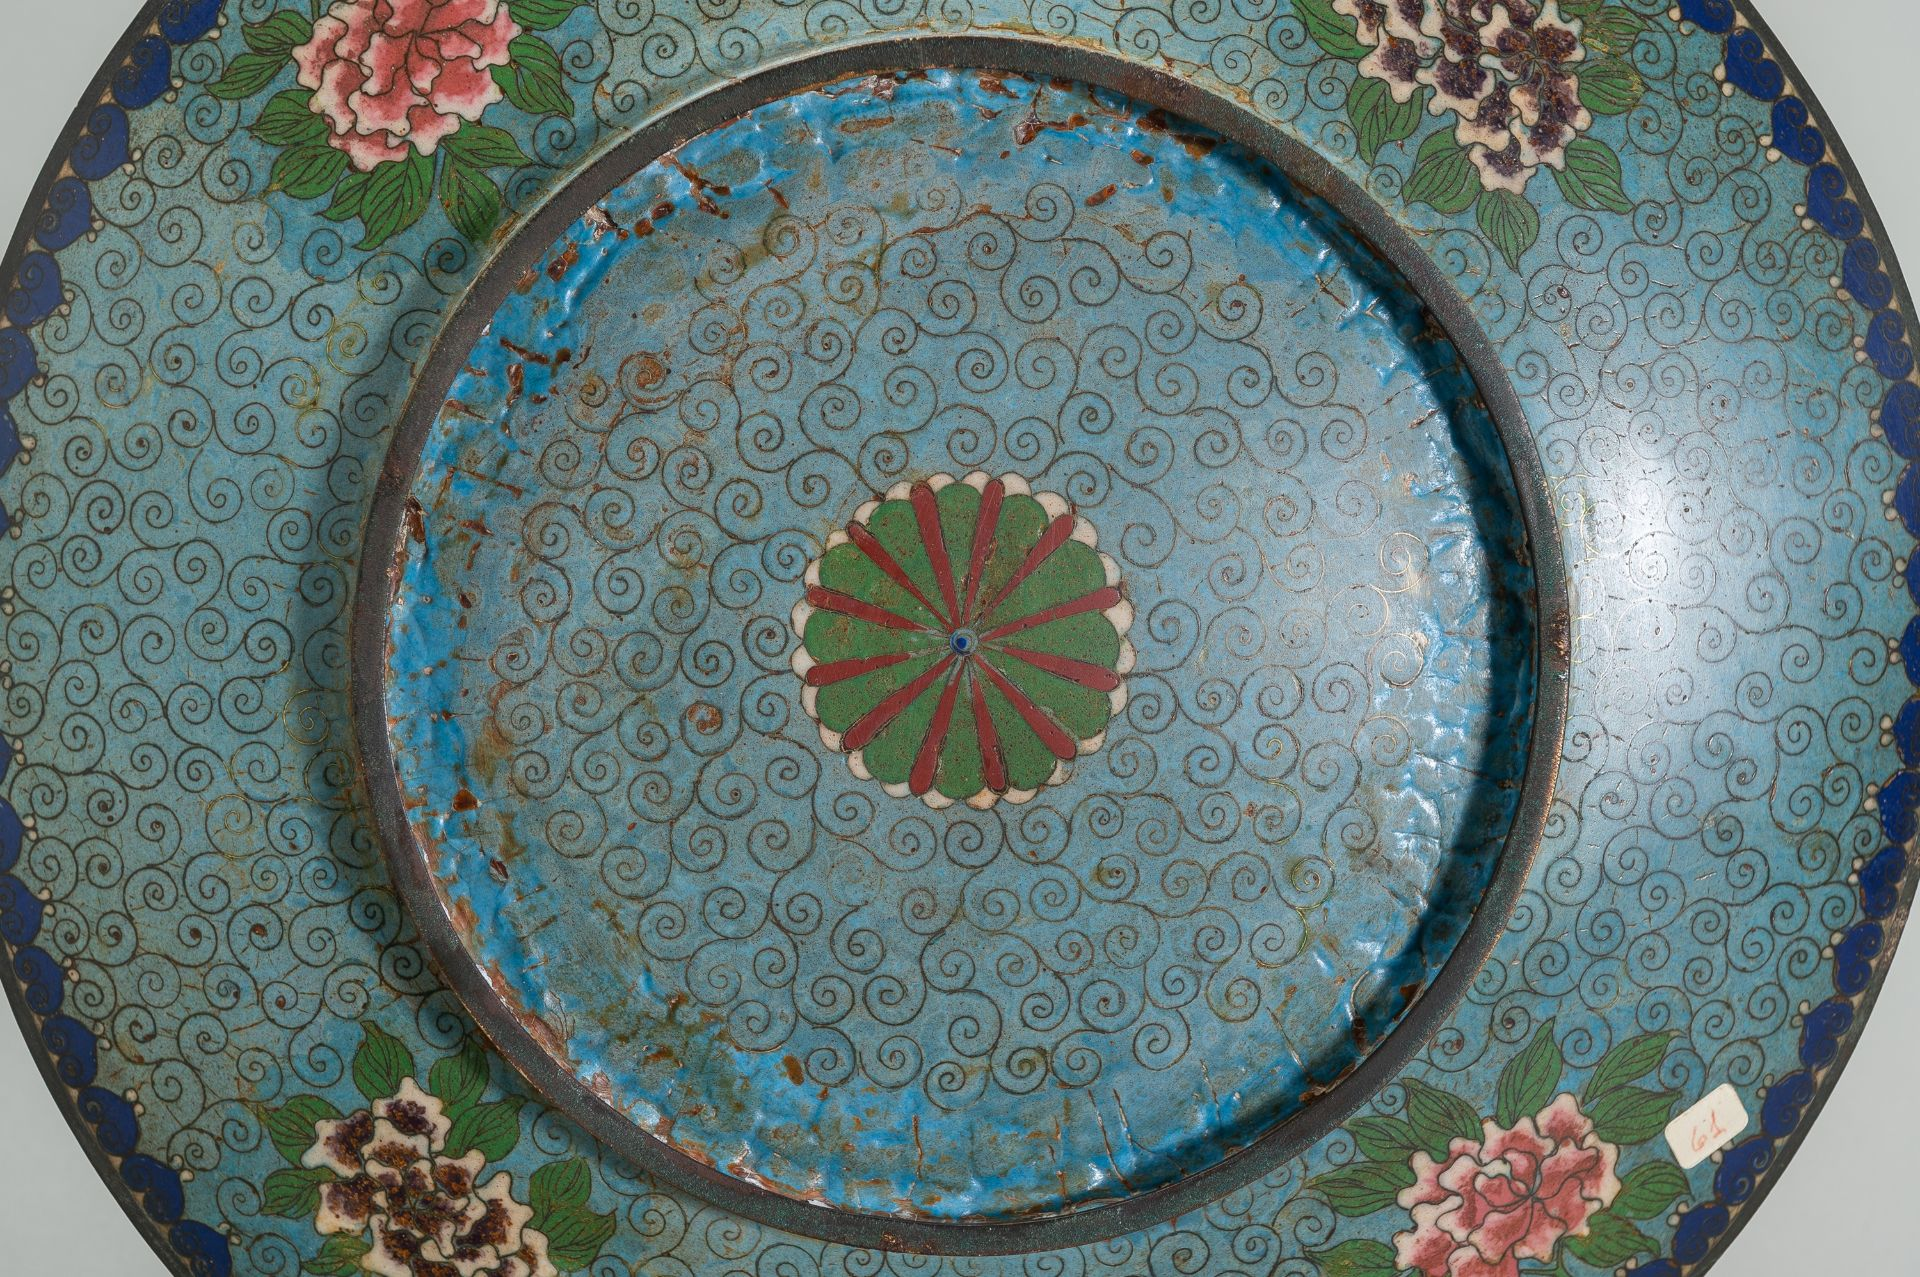 A LARGE CLOISONNE ENAMEL PLATE WITH FIGURAL DECOR - Image 7 of 7